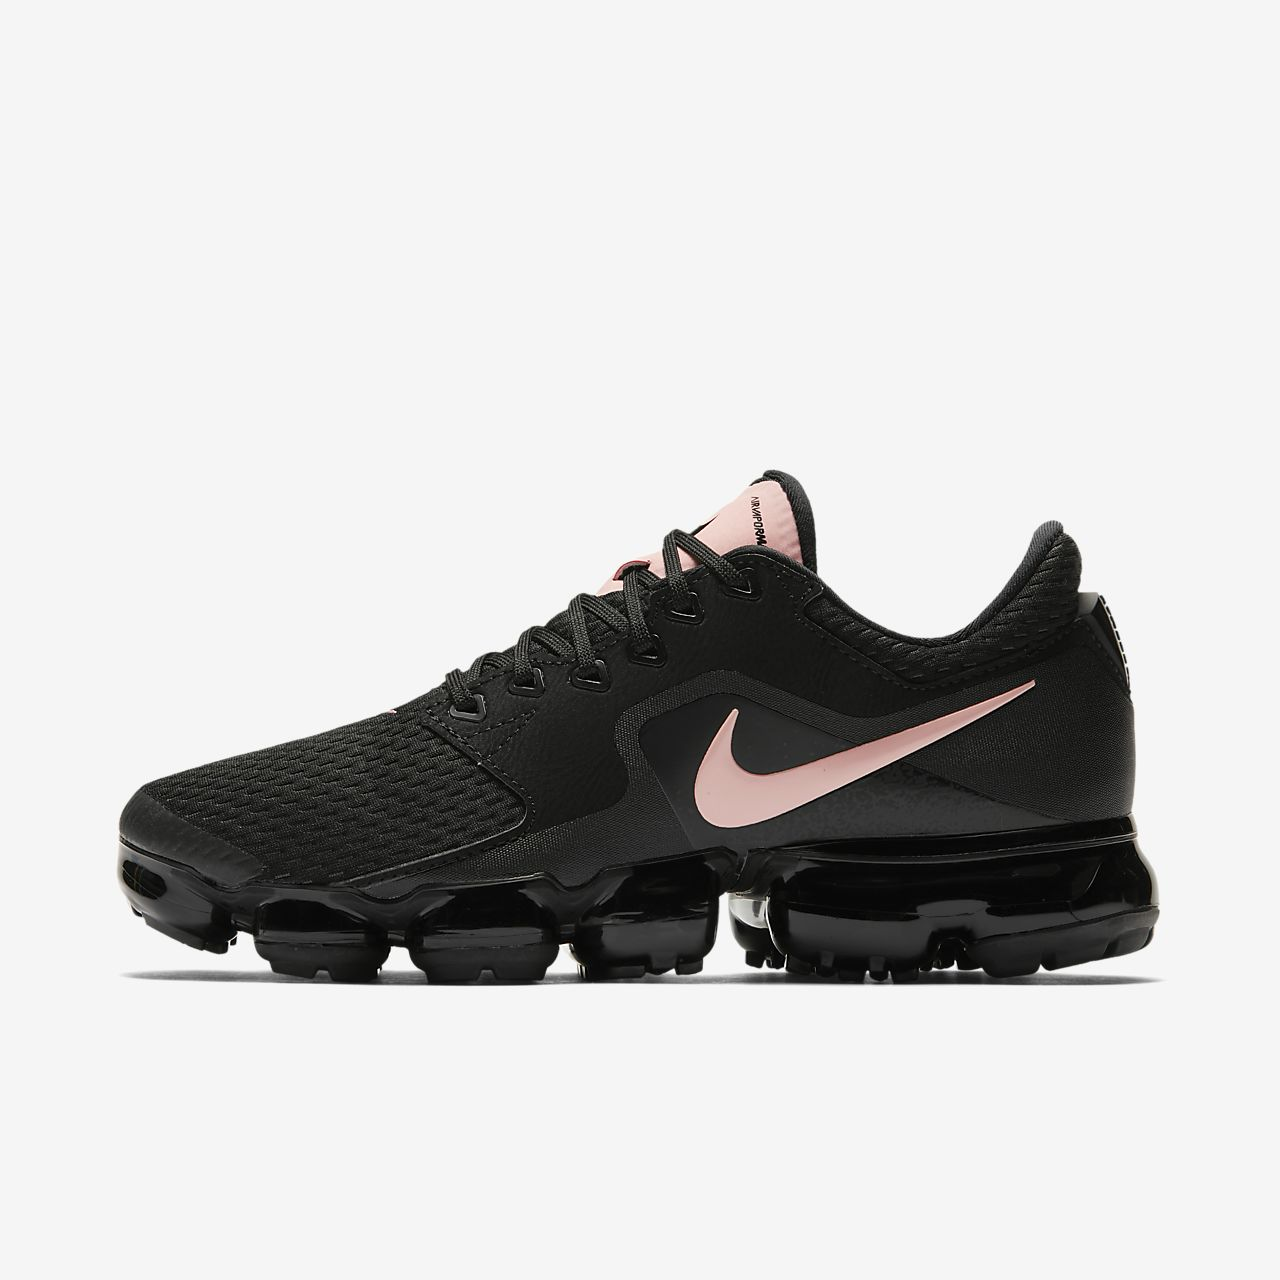 73a6d1d5cc41b discount code for nike air vapormax womens black silver 5c642 586bd